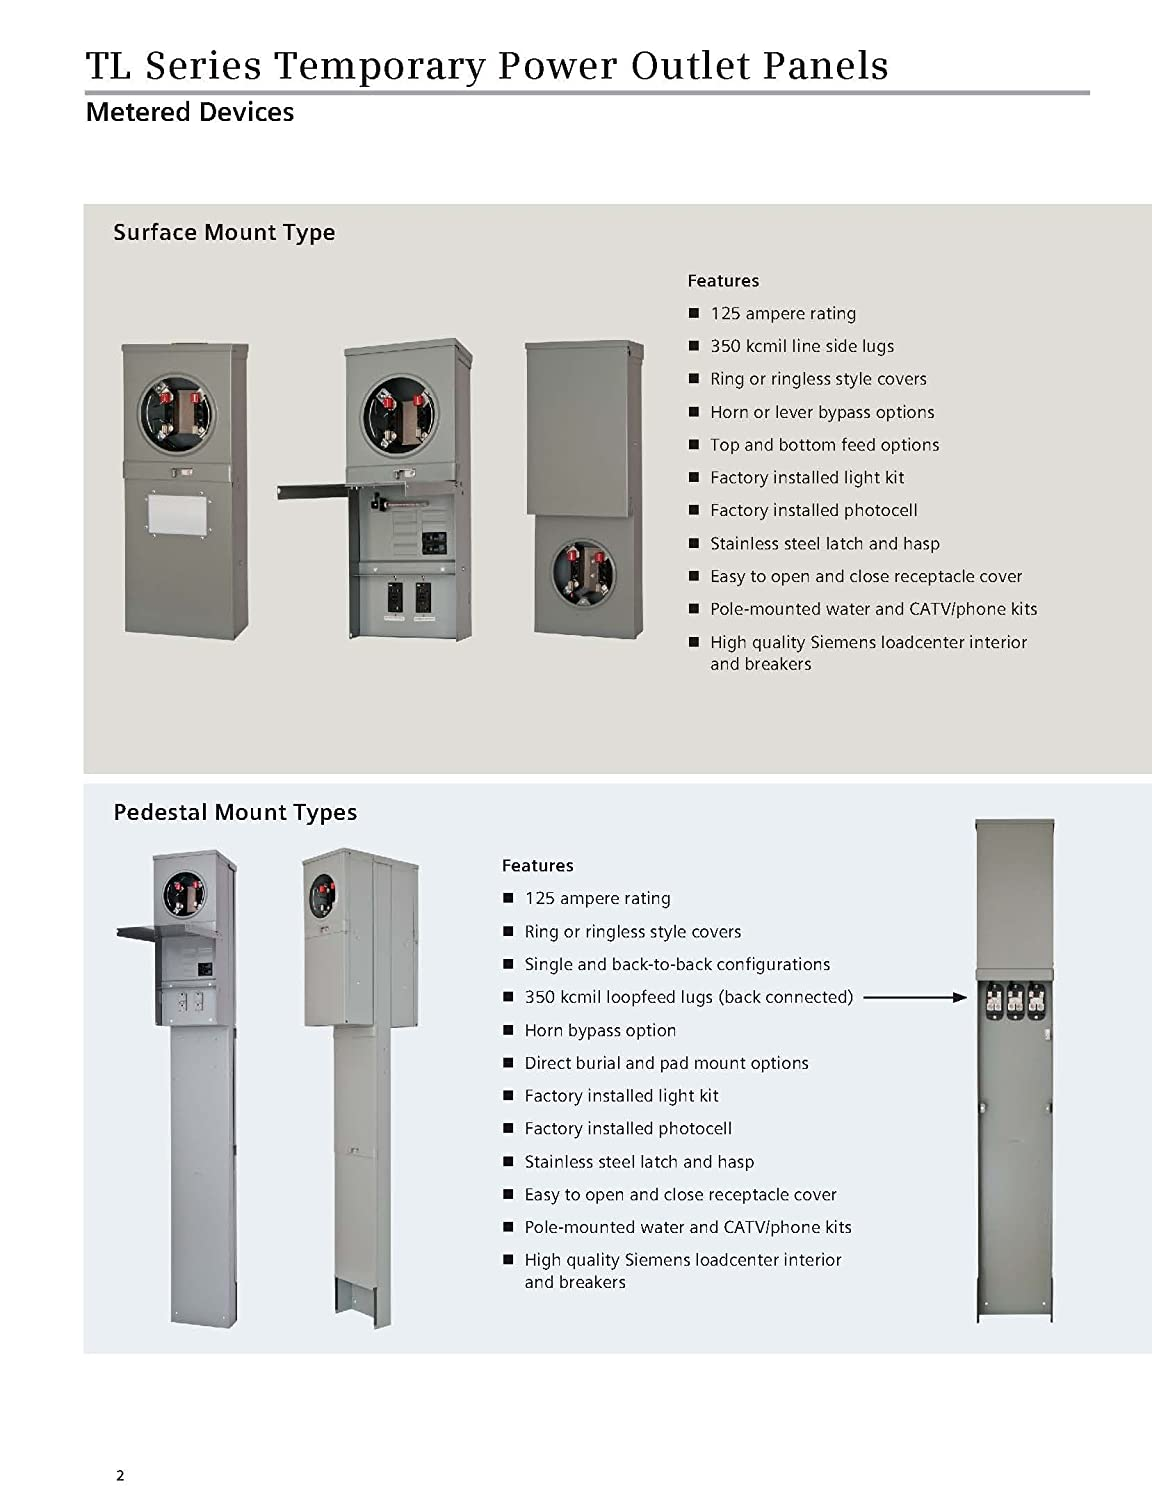 Siemens Tl137us Talon Temporary Power Outlet Panel With A 20 30 50 Rv Breaker Box Wiring Diagram On Amp Out And Receptacle Installed Unmetered Circuit Breakers